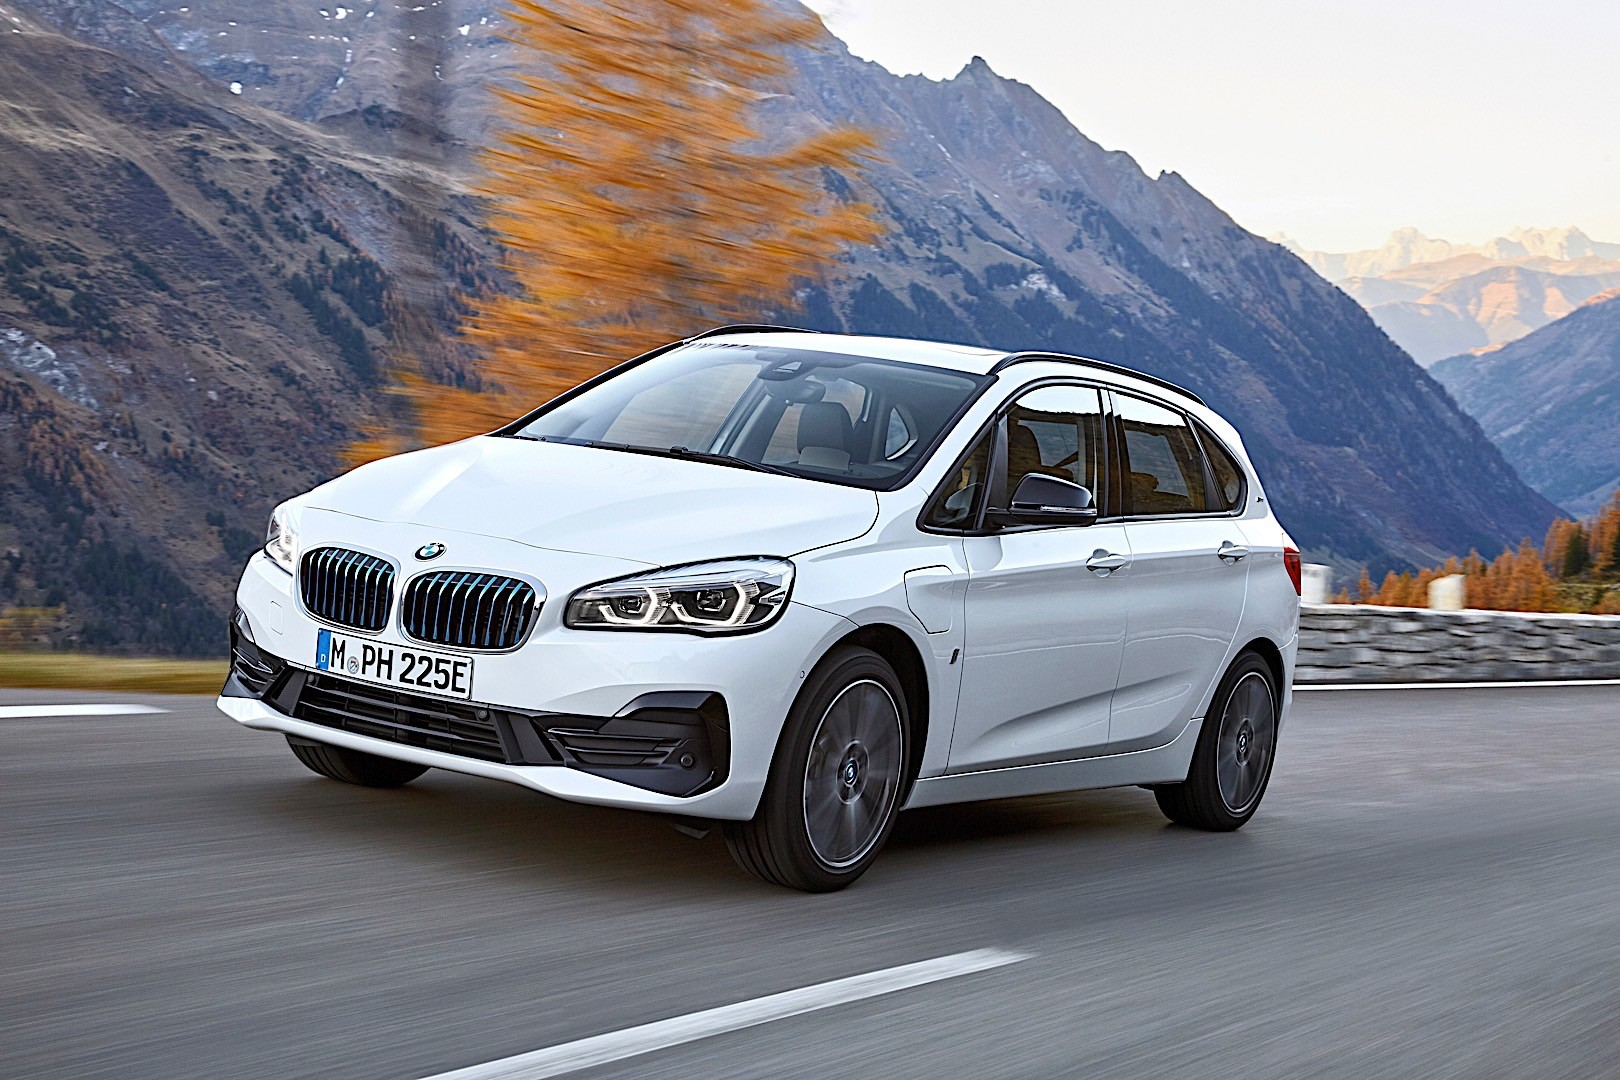 2020 BMW 225xe Active Tourer Rumors And Specs >> 2020 Bmw 225xe Active Tourer Revealed With More Range And